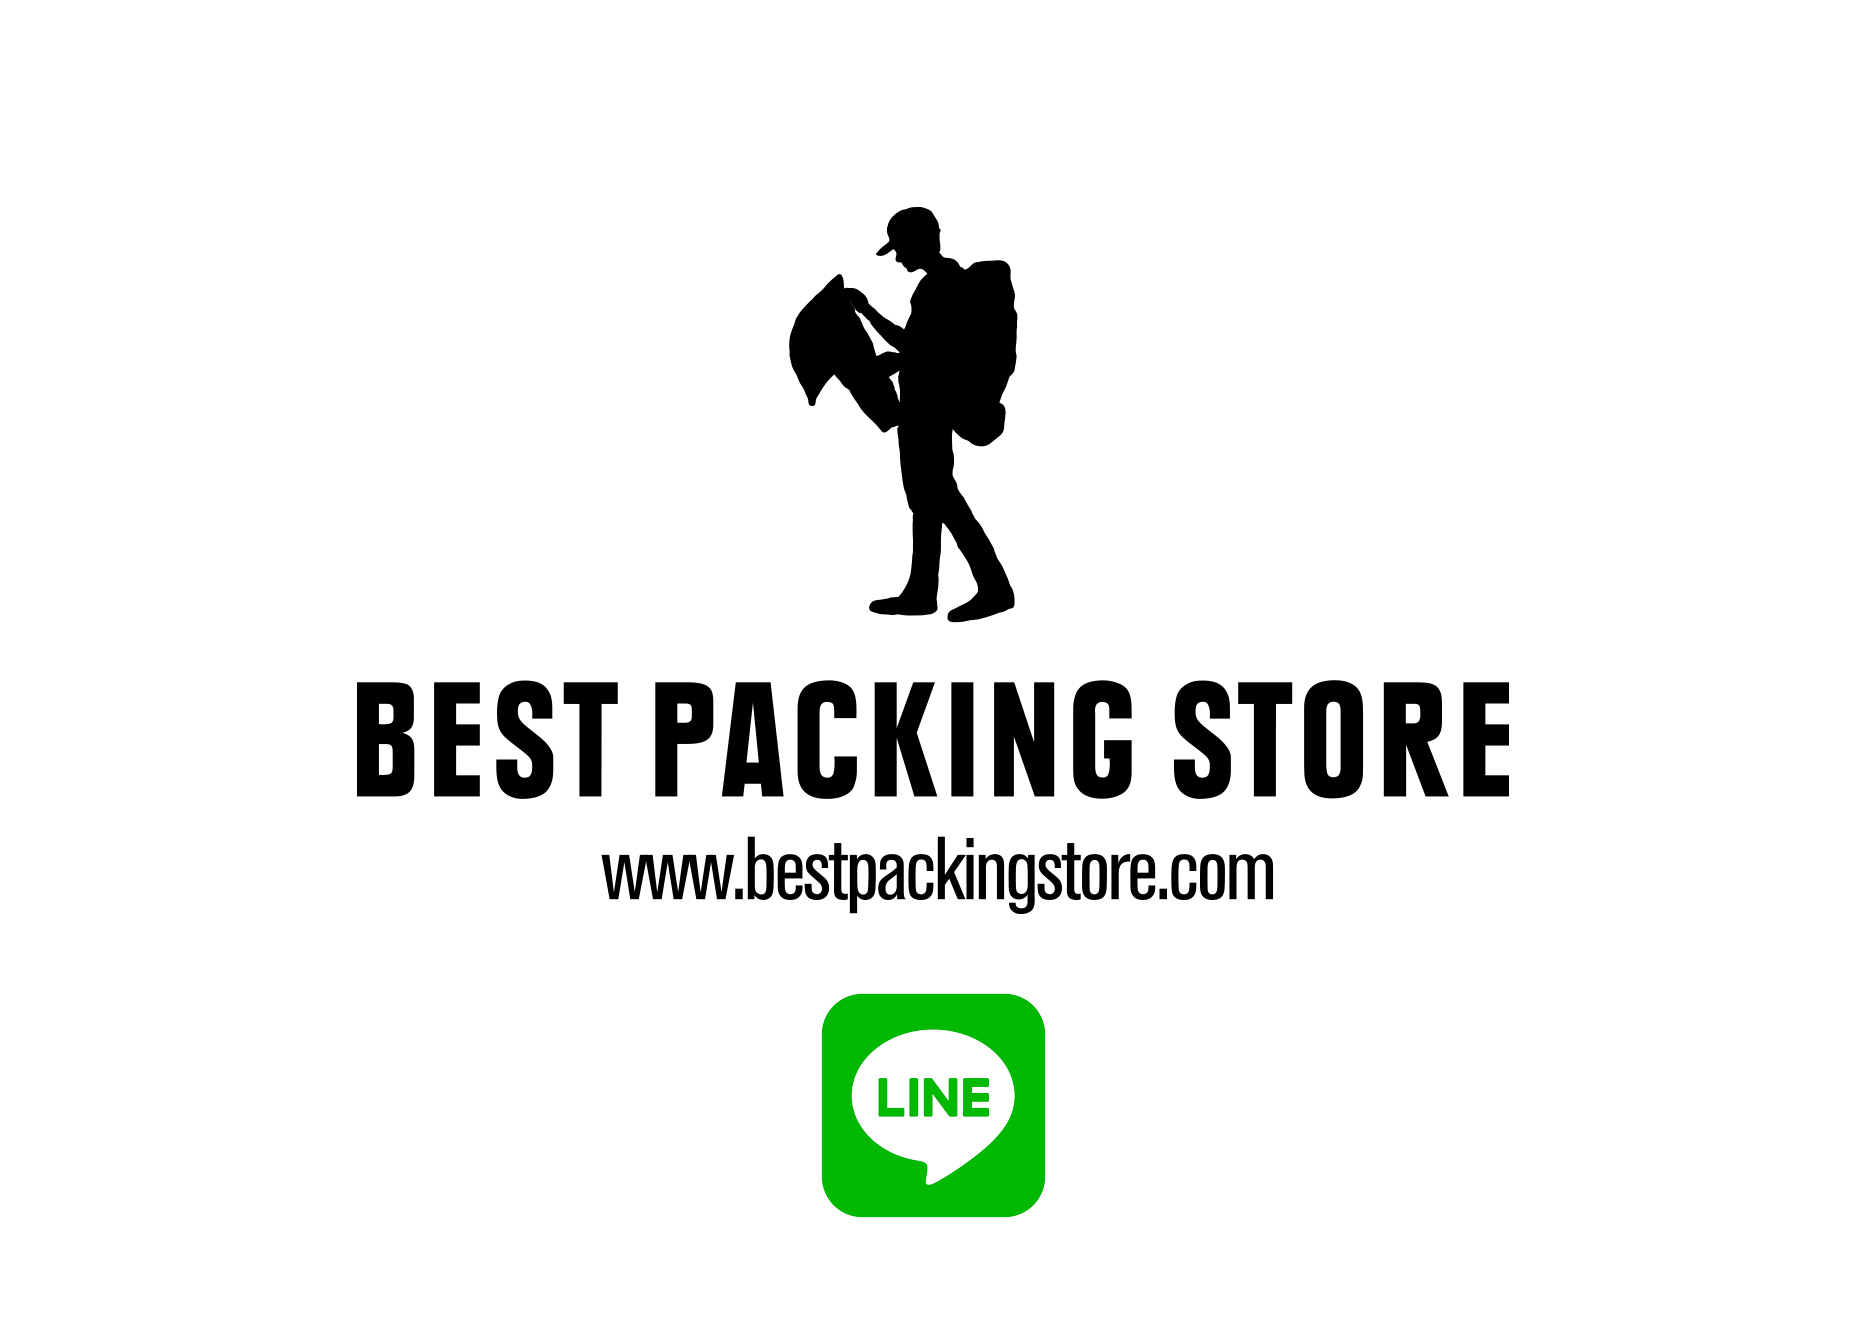 BEST PACKING STORE OFFICIAL LINE ACCOUNT START